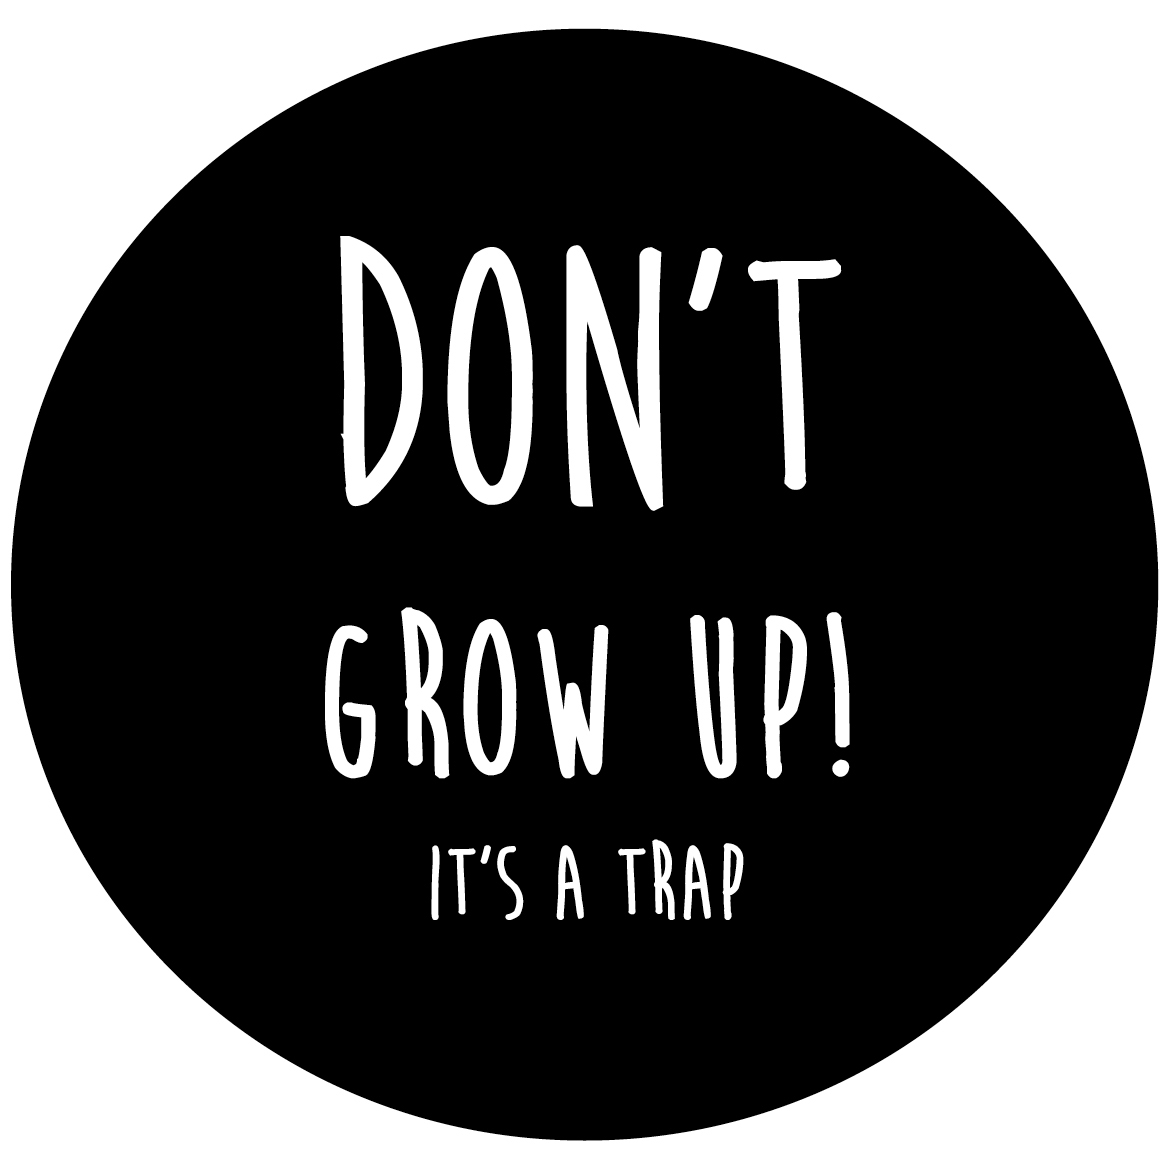 Don't grow up! It's a trap